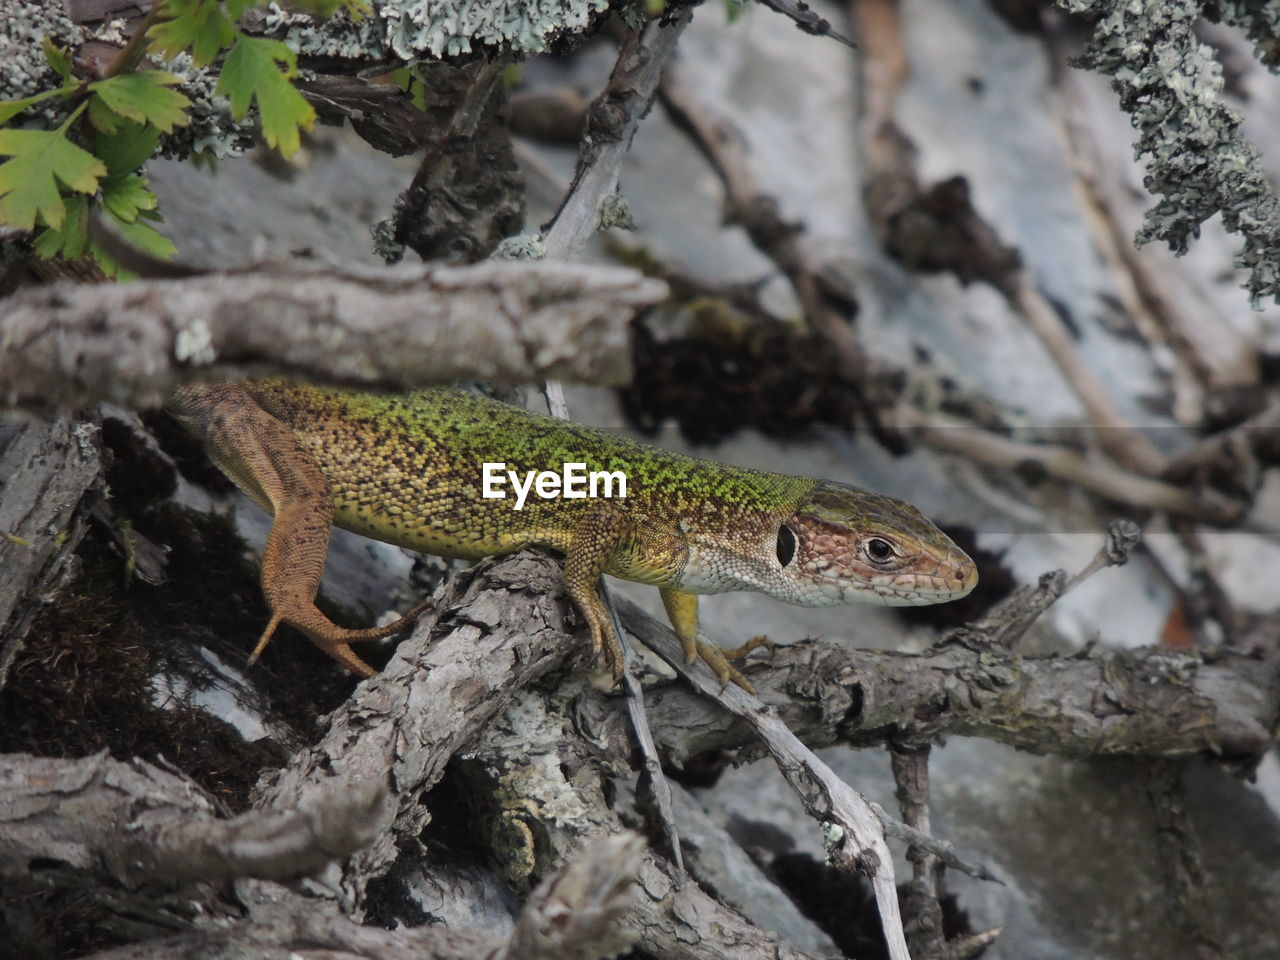 animal themes, animal, one animal, animal wildlife, animals in the wild, lizard, reptile, vertebrate, no people, nature, tree, plant, branch, focus on foreground, day, close-up, side view, outdoors, zoology, rock, animal scale